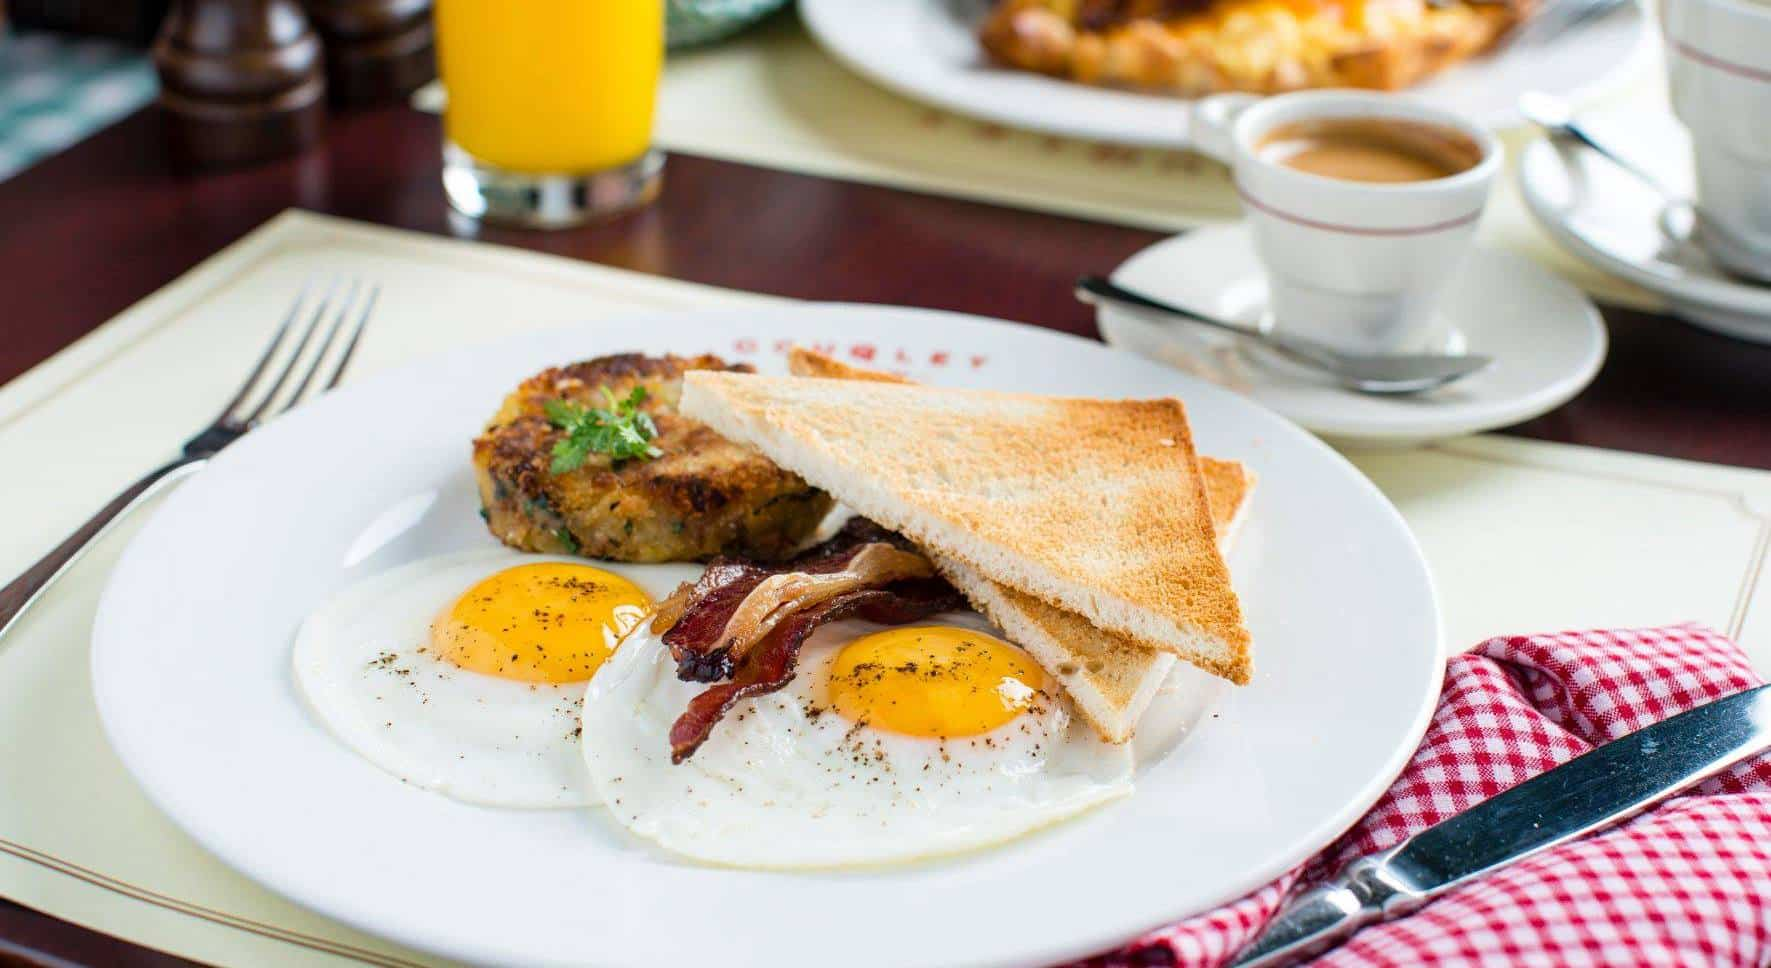 Where to Eat Brunch in Beirut